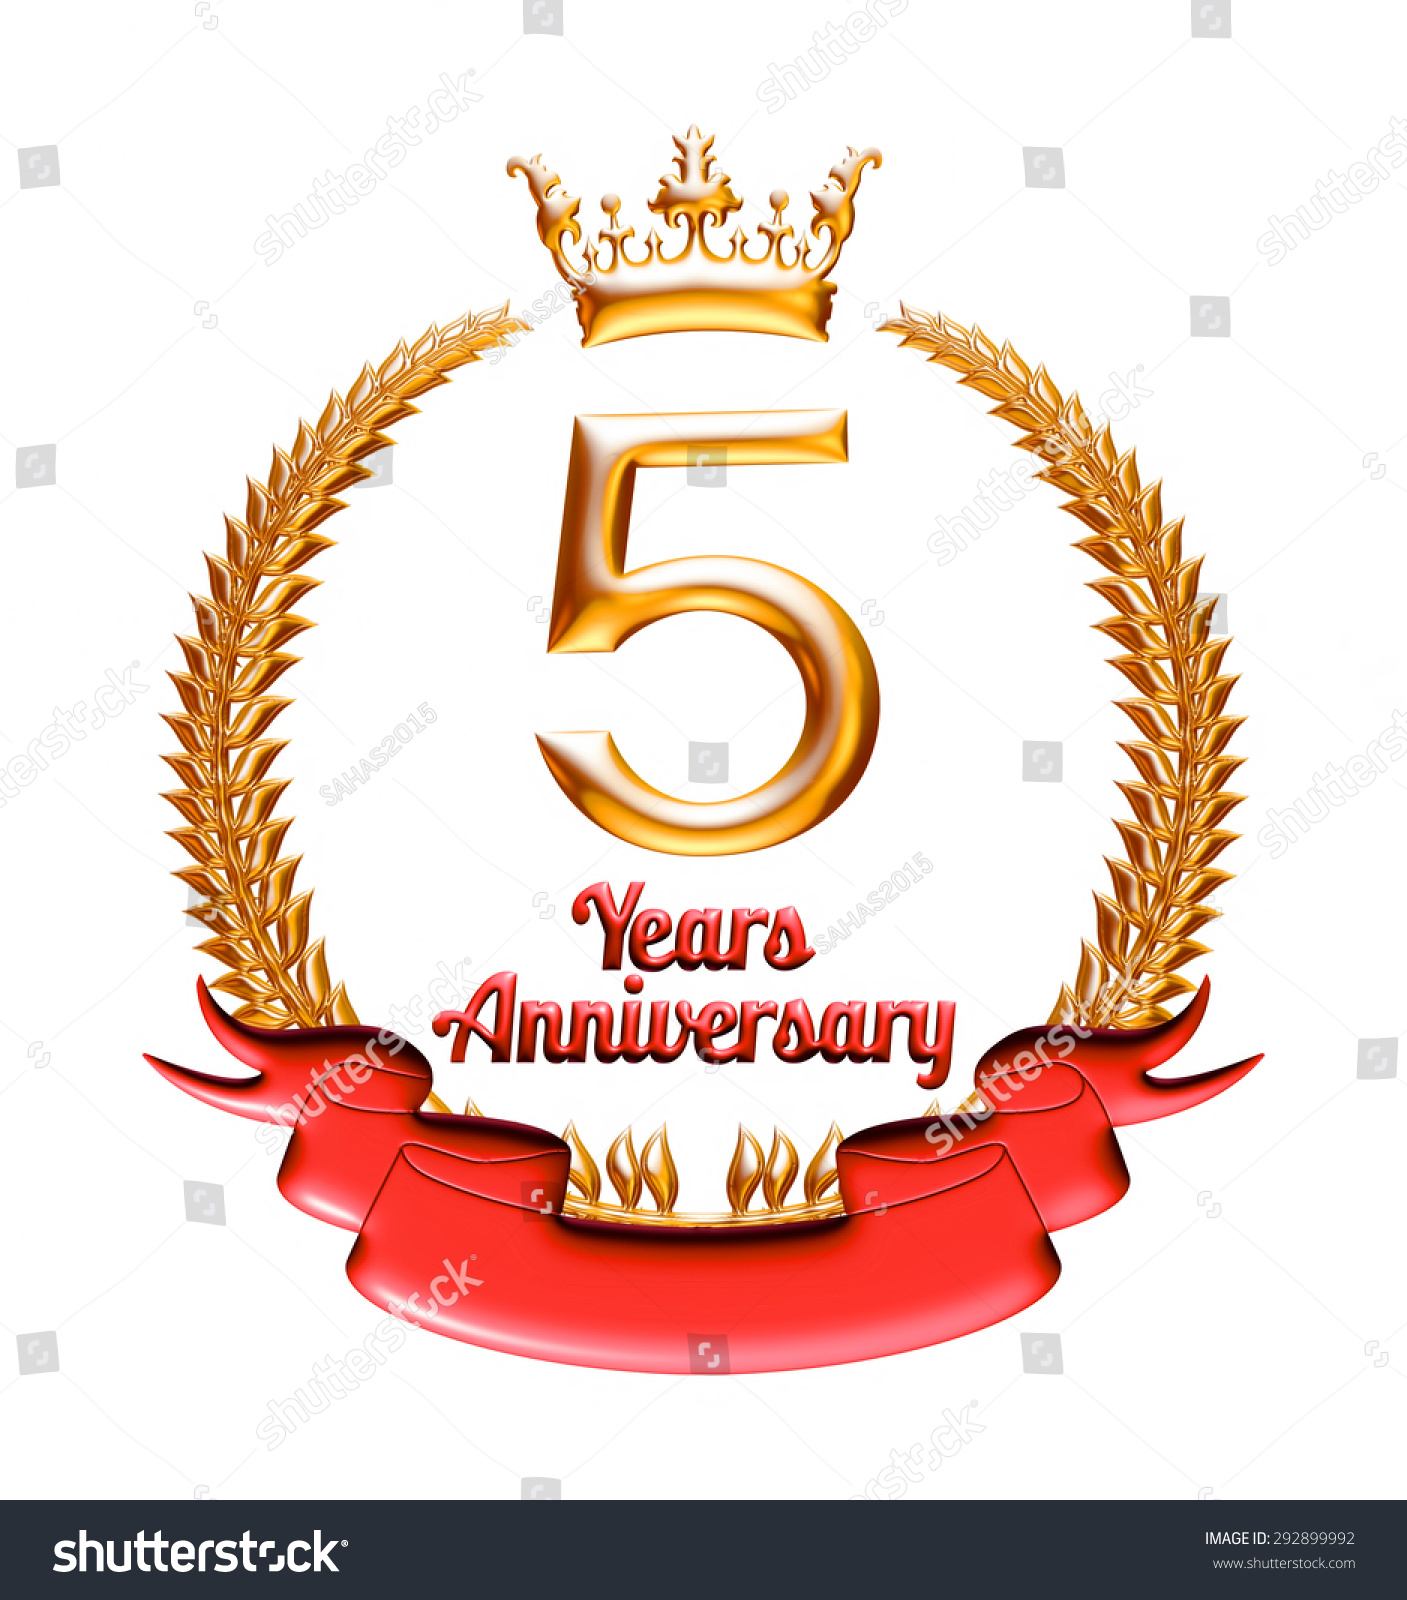 5 years anniversary golden red ribbon stock illustration 292899992 5 years anniversary golden with red ribbon isolated on white background biocorpaavc Gallery